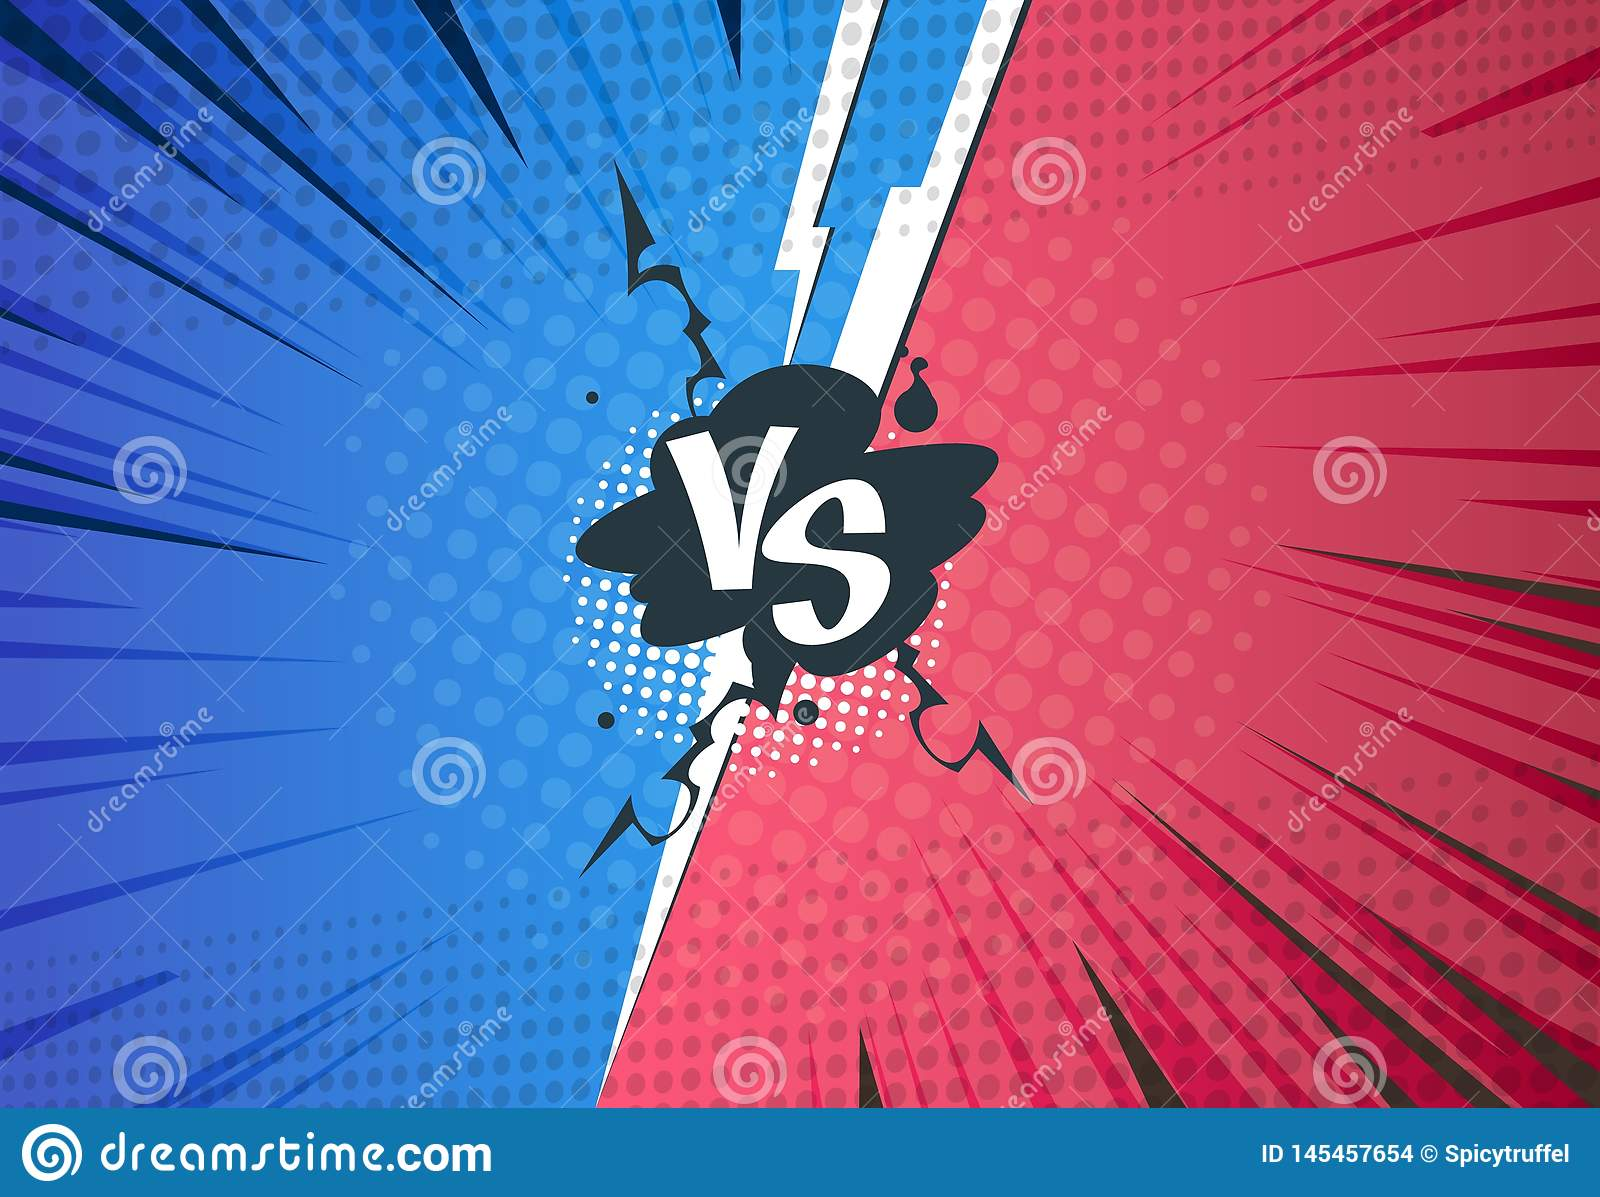 Versus comics background. Superhero pop art battle, cartoon halftone style, retro VS challenge template. Vector versus